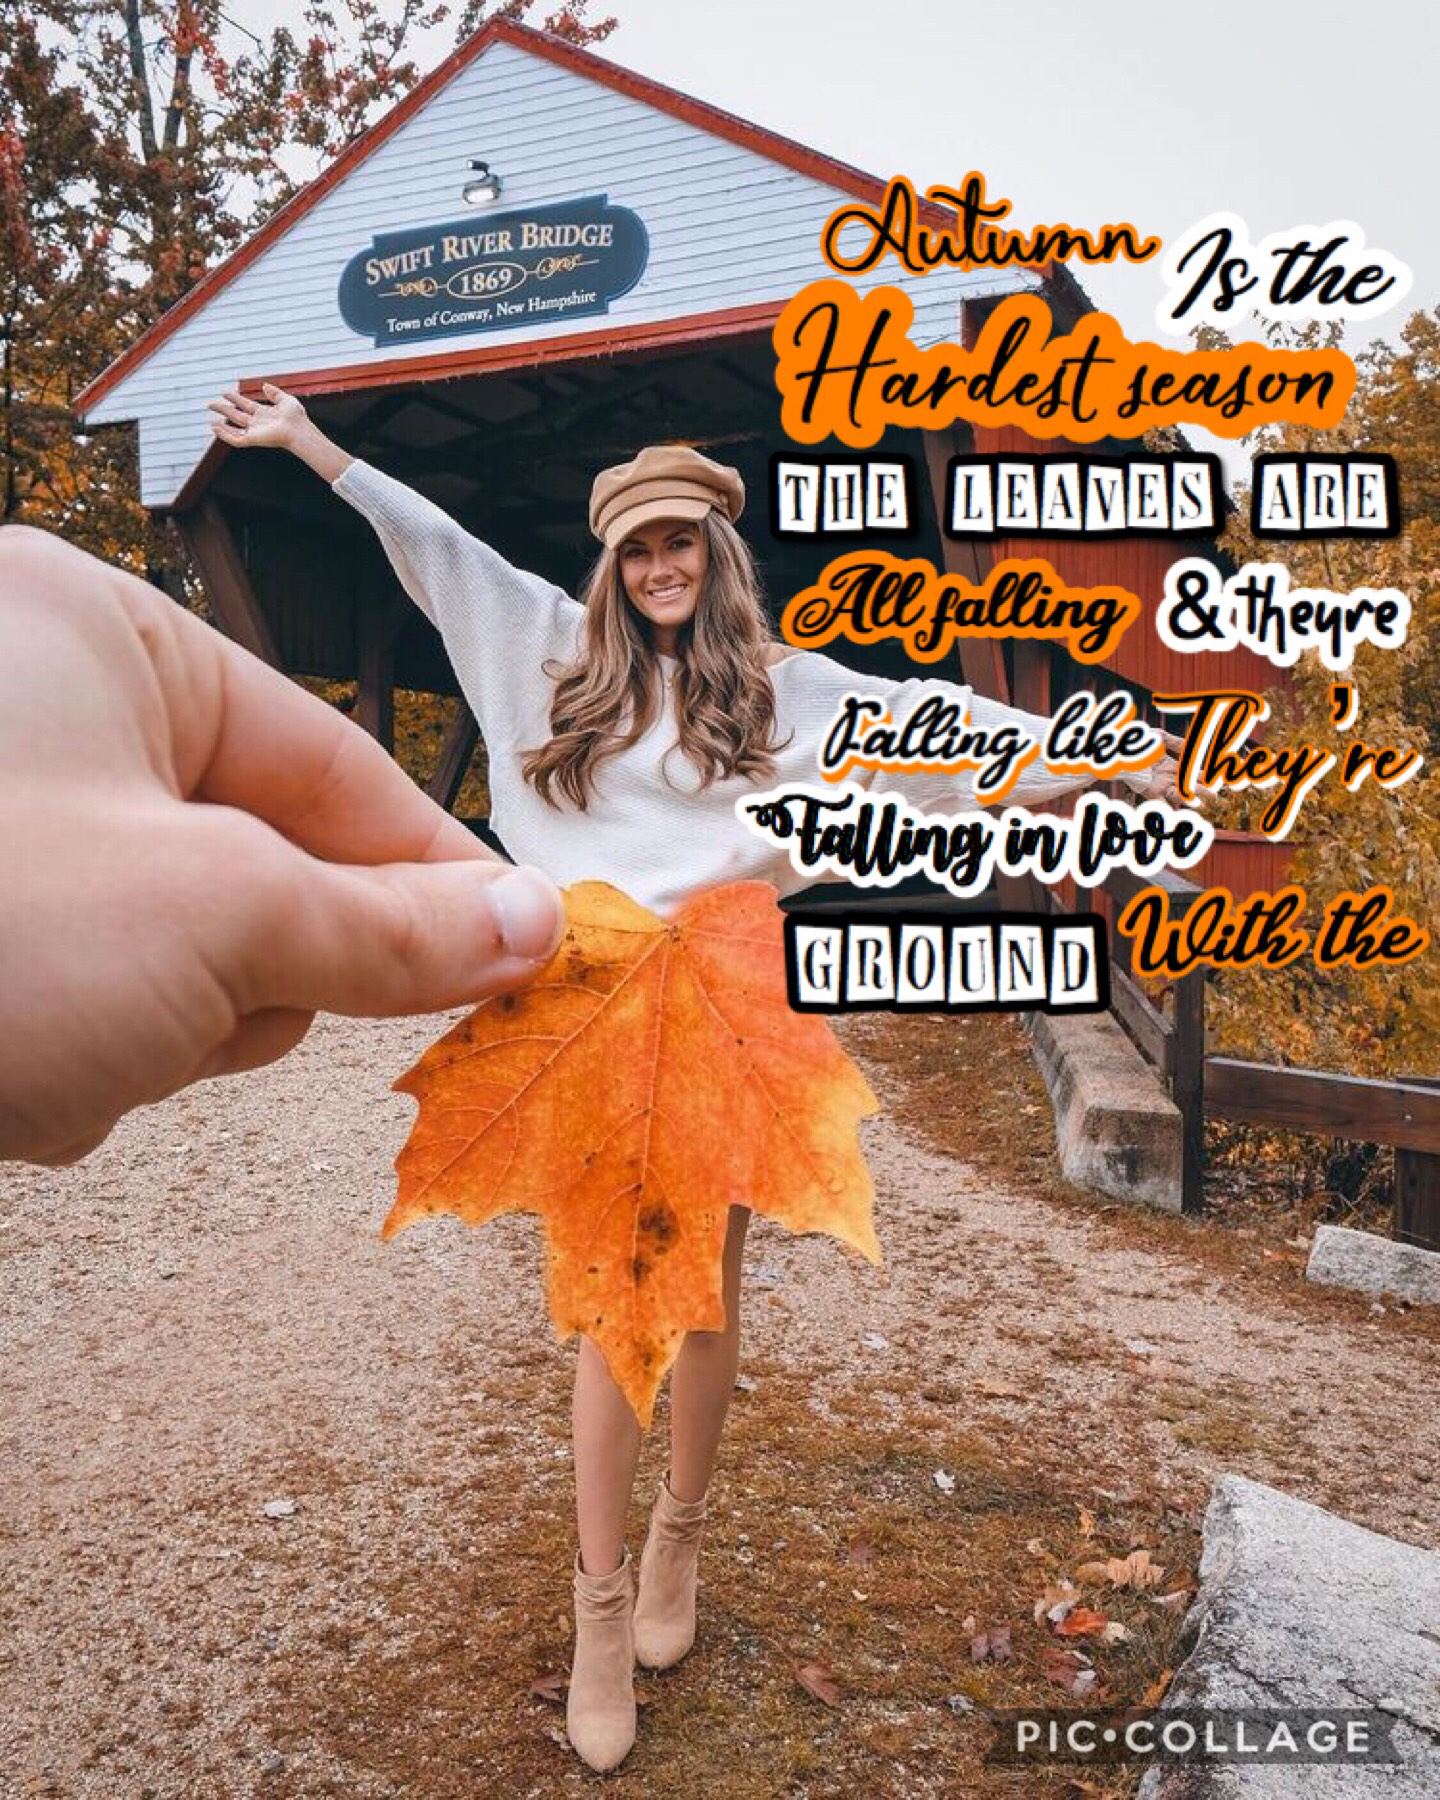 Entry to piccollage contest number 1 GUIIIIZZZ!!!  YAY MY FAVORITE SEASON IS COMING BACK!!   /10?!?🥧🍂🍂🍂🍂🍁🍁🍁🍄🍄🍄💥💥💥💫